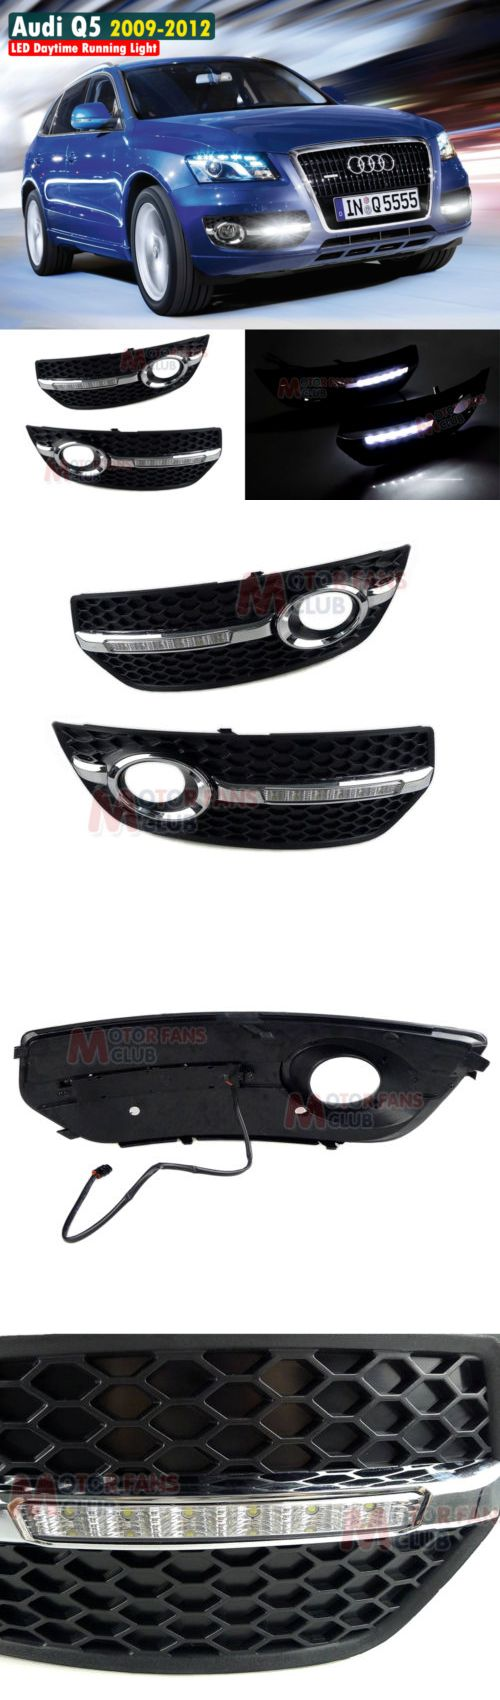 Motors Parts And Accessories: New Led Daytime Running Light For Audi Q5 Fog Driving Drl 2009 2010 2011 2012 BUY IT NOW ONLY: $158.18